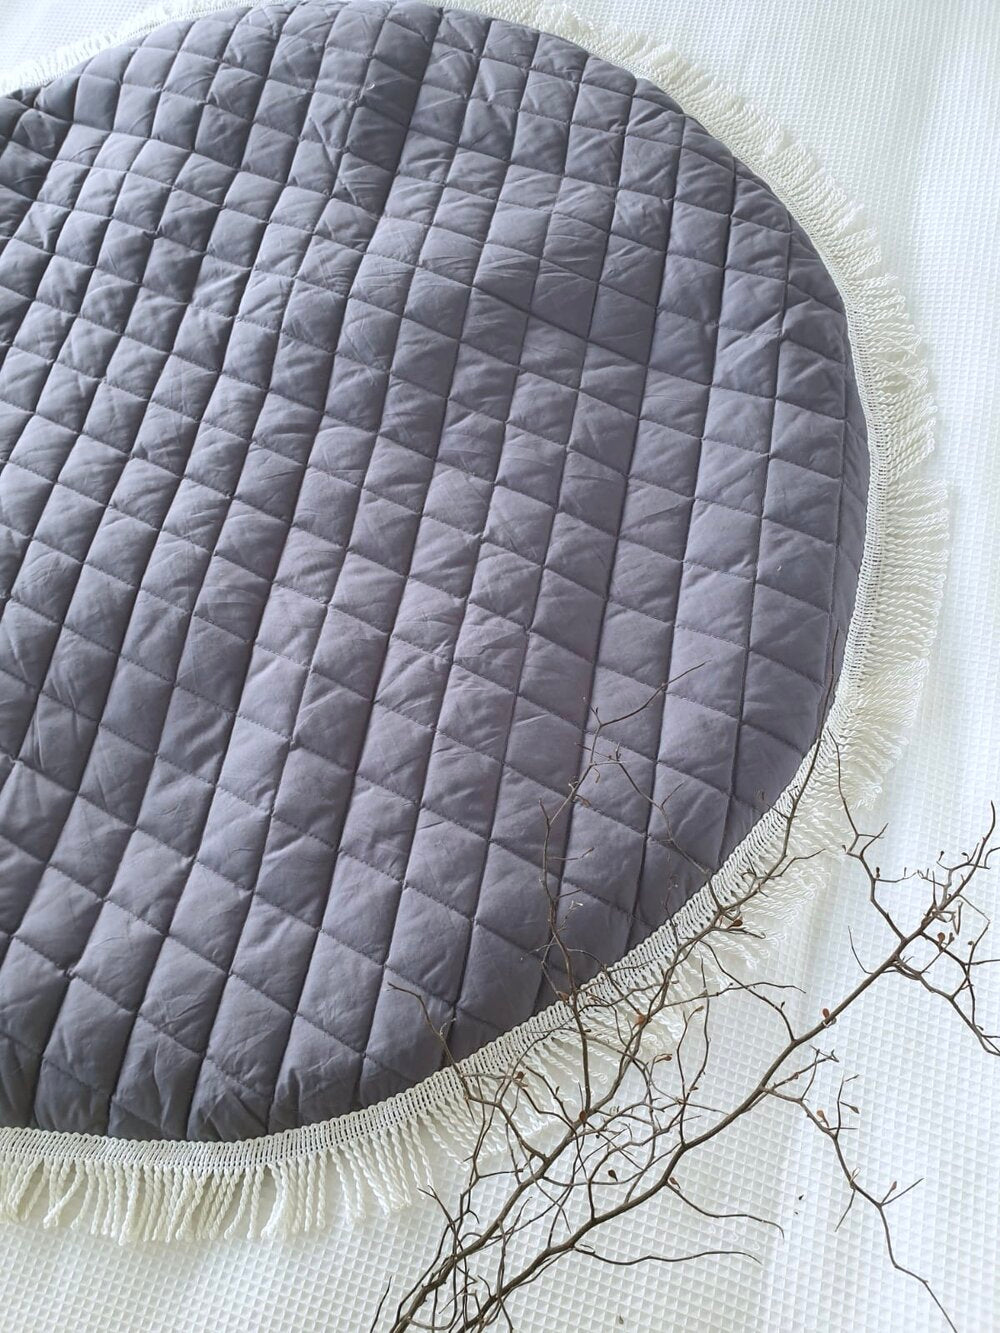 Playmat Round Large - Luxe Quilted Diamond - Dove White (IN STOCK) or Charcoal Grey (2-3 WEEKS TURNAROUND)